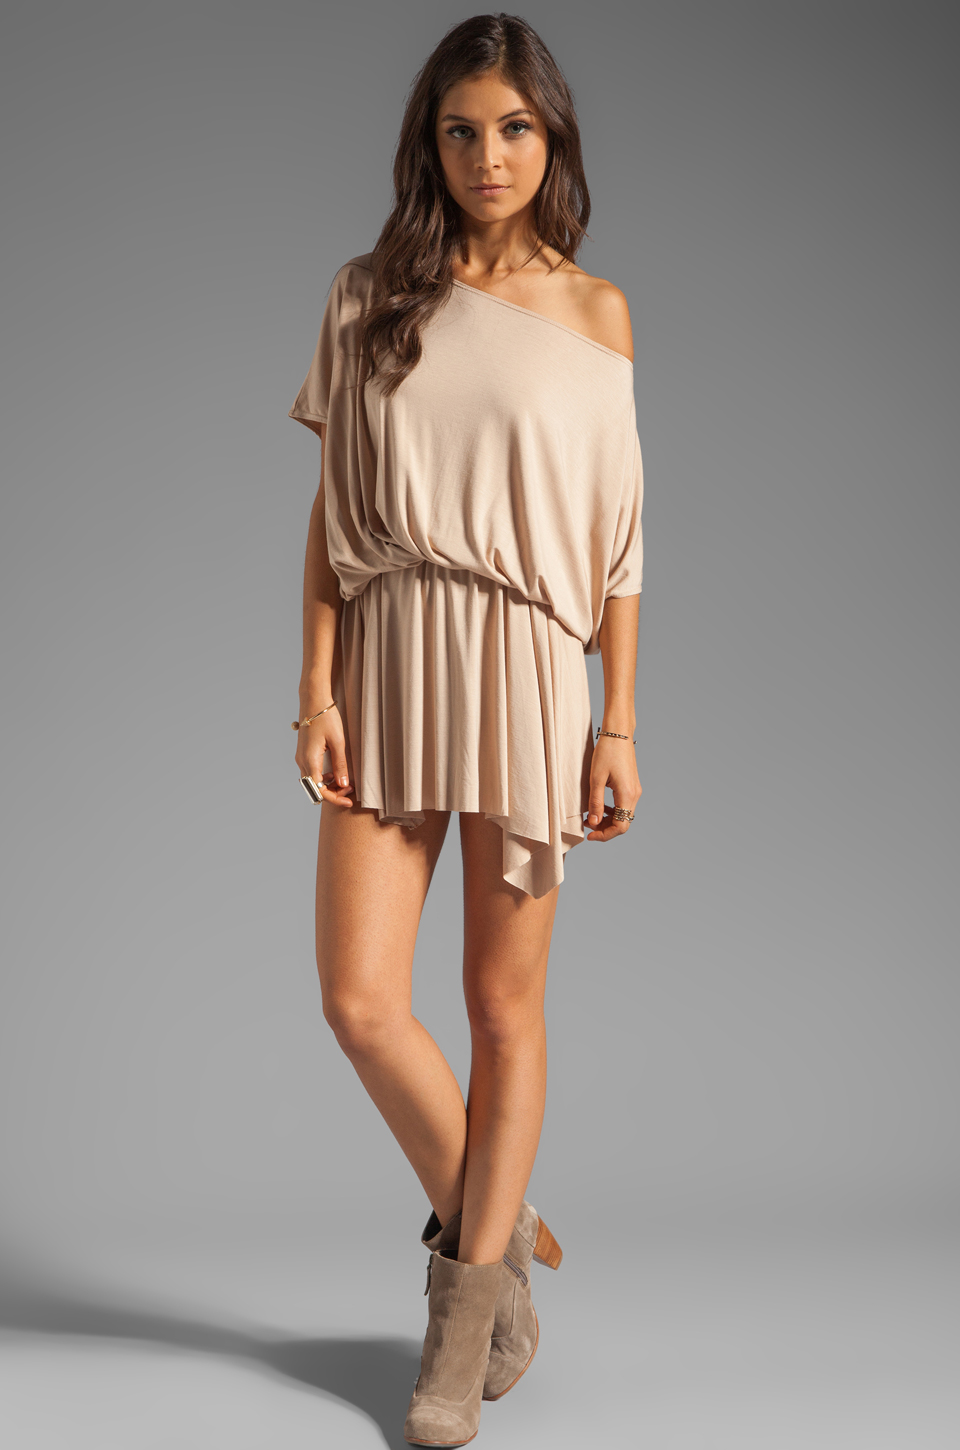 Rachel Pally Thea Mini Dress in Bamboo